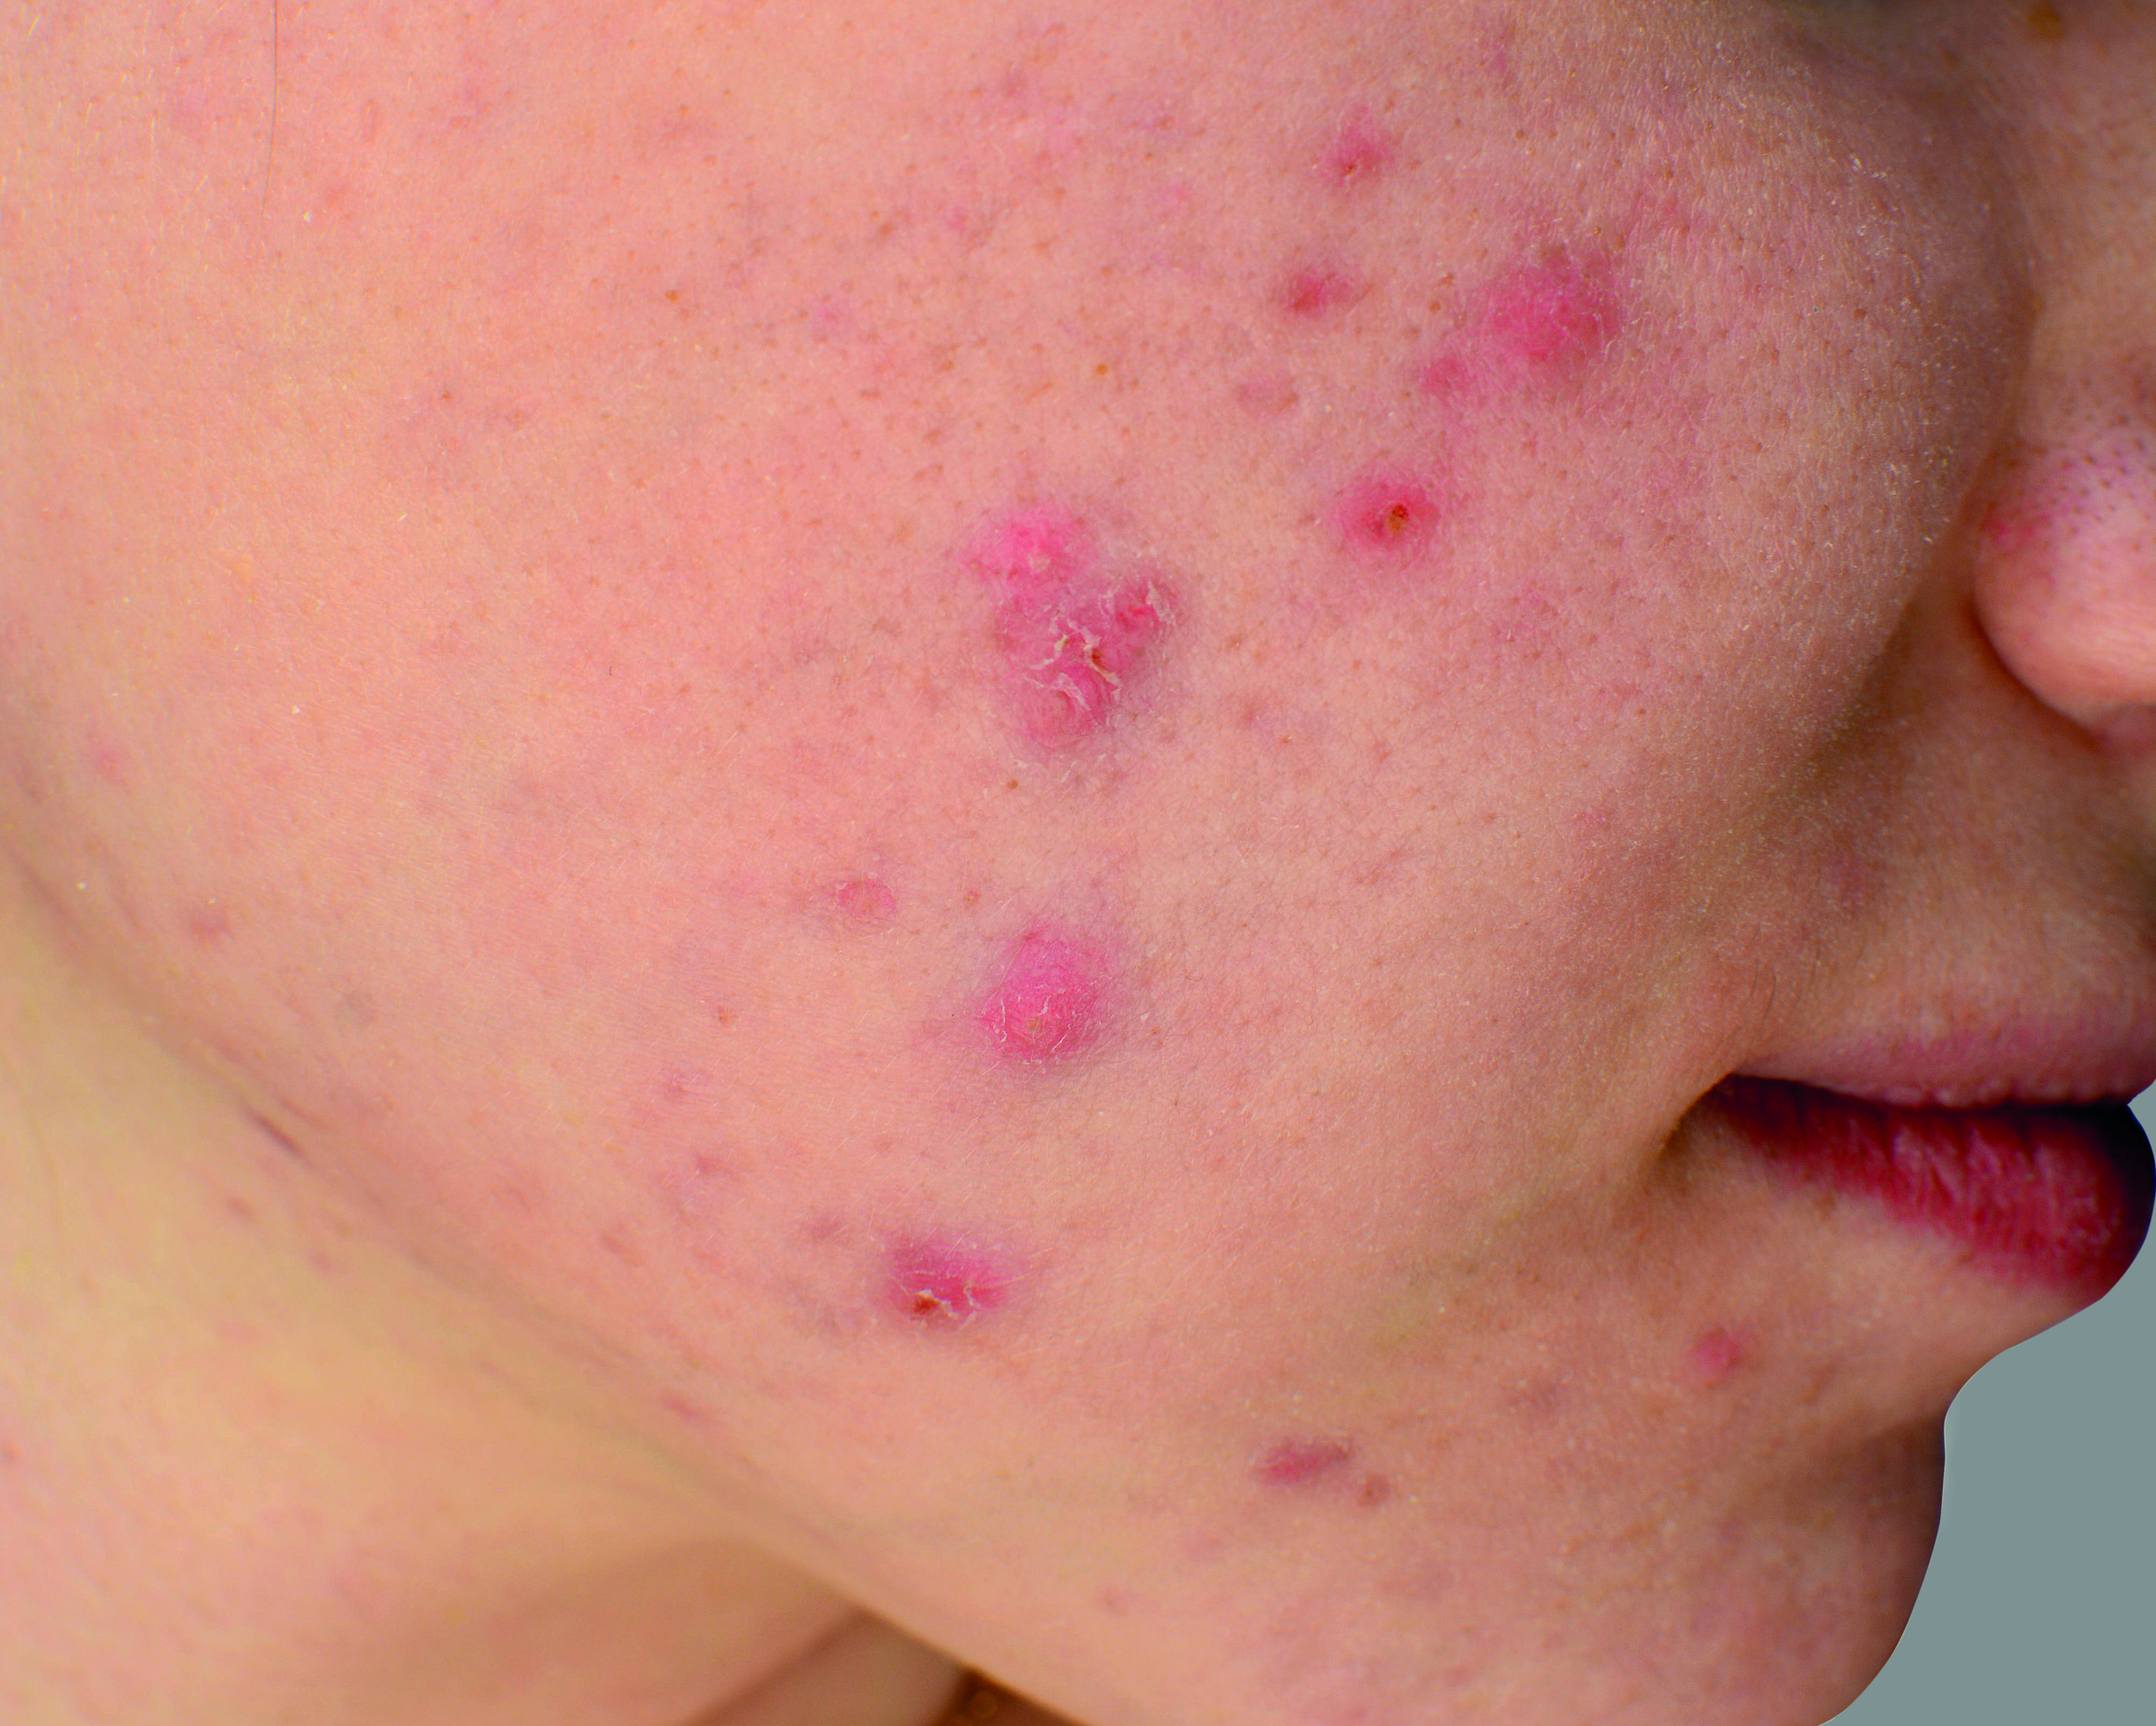 The challenge in defining acne and rosacea